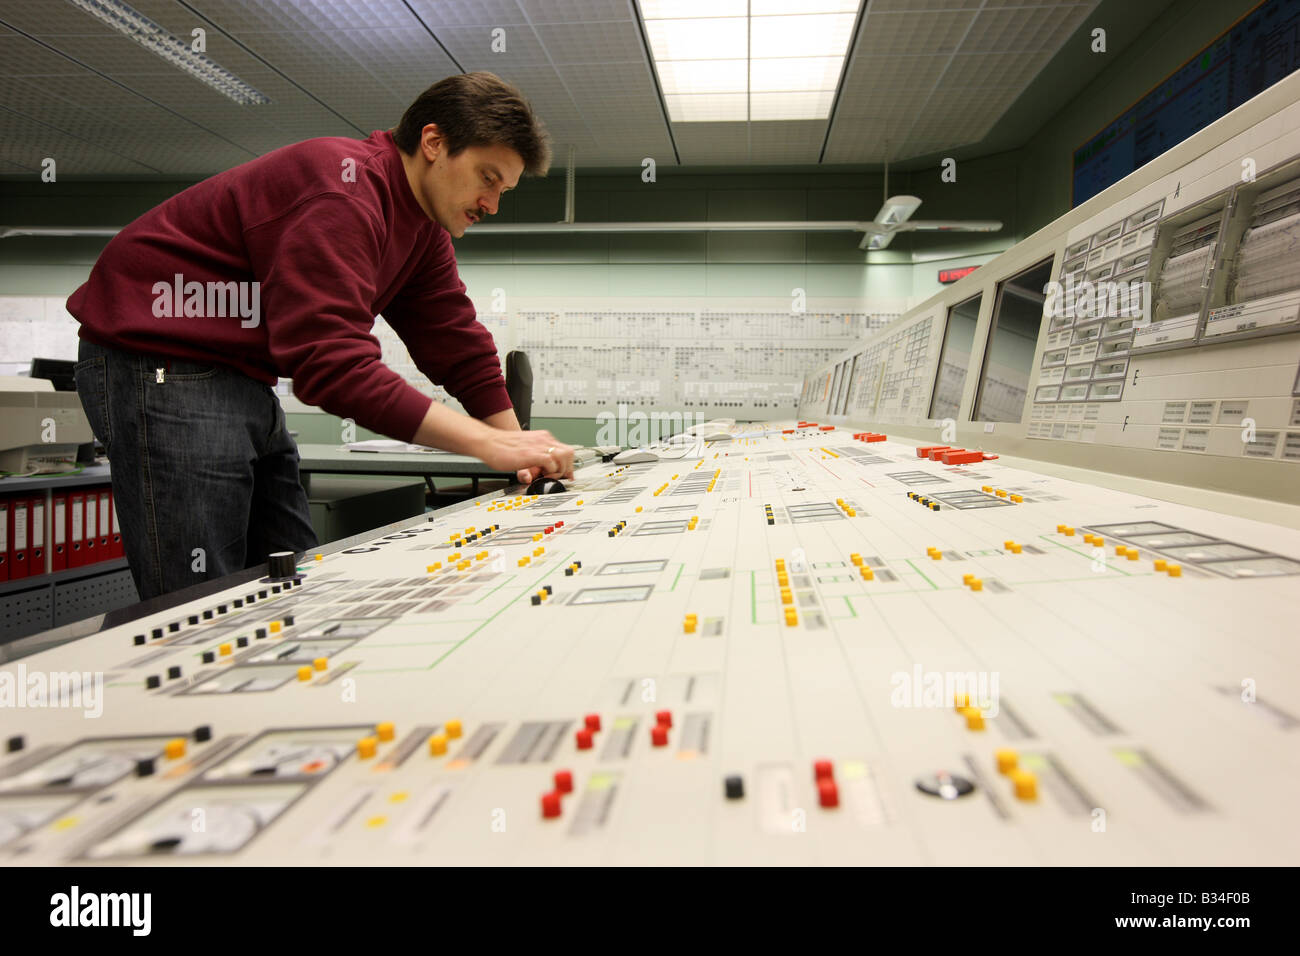 Simulator center for nuclear power stations, training facility for power station staff. Essen, Germany Stock Photo